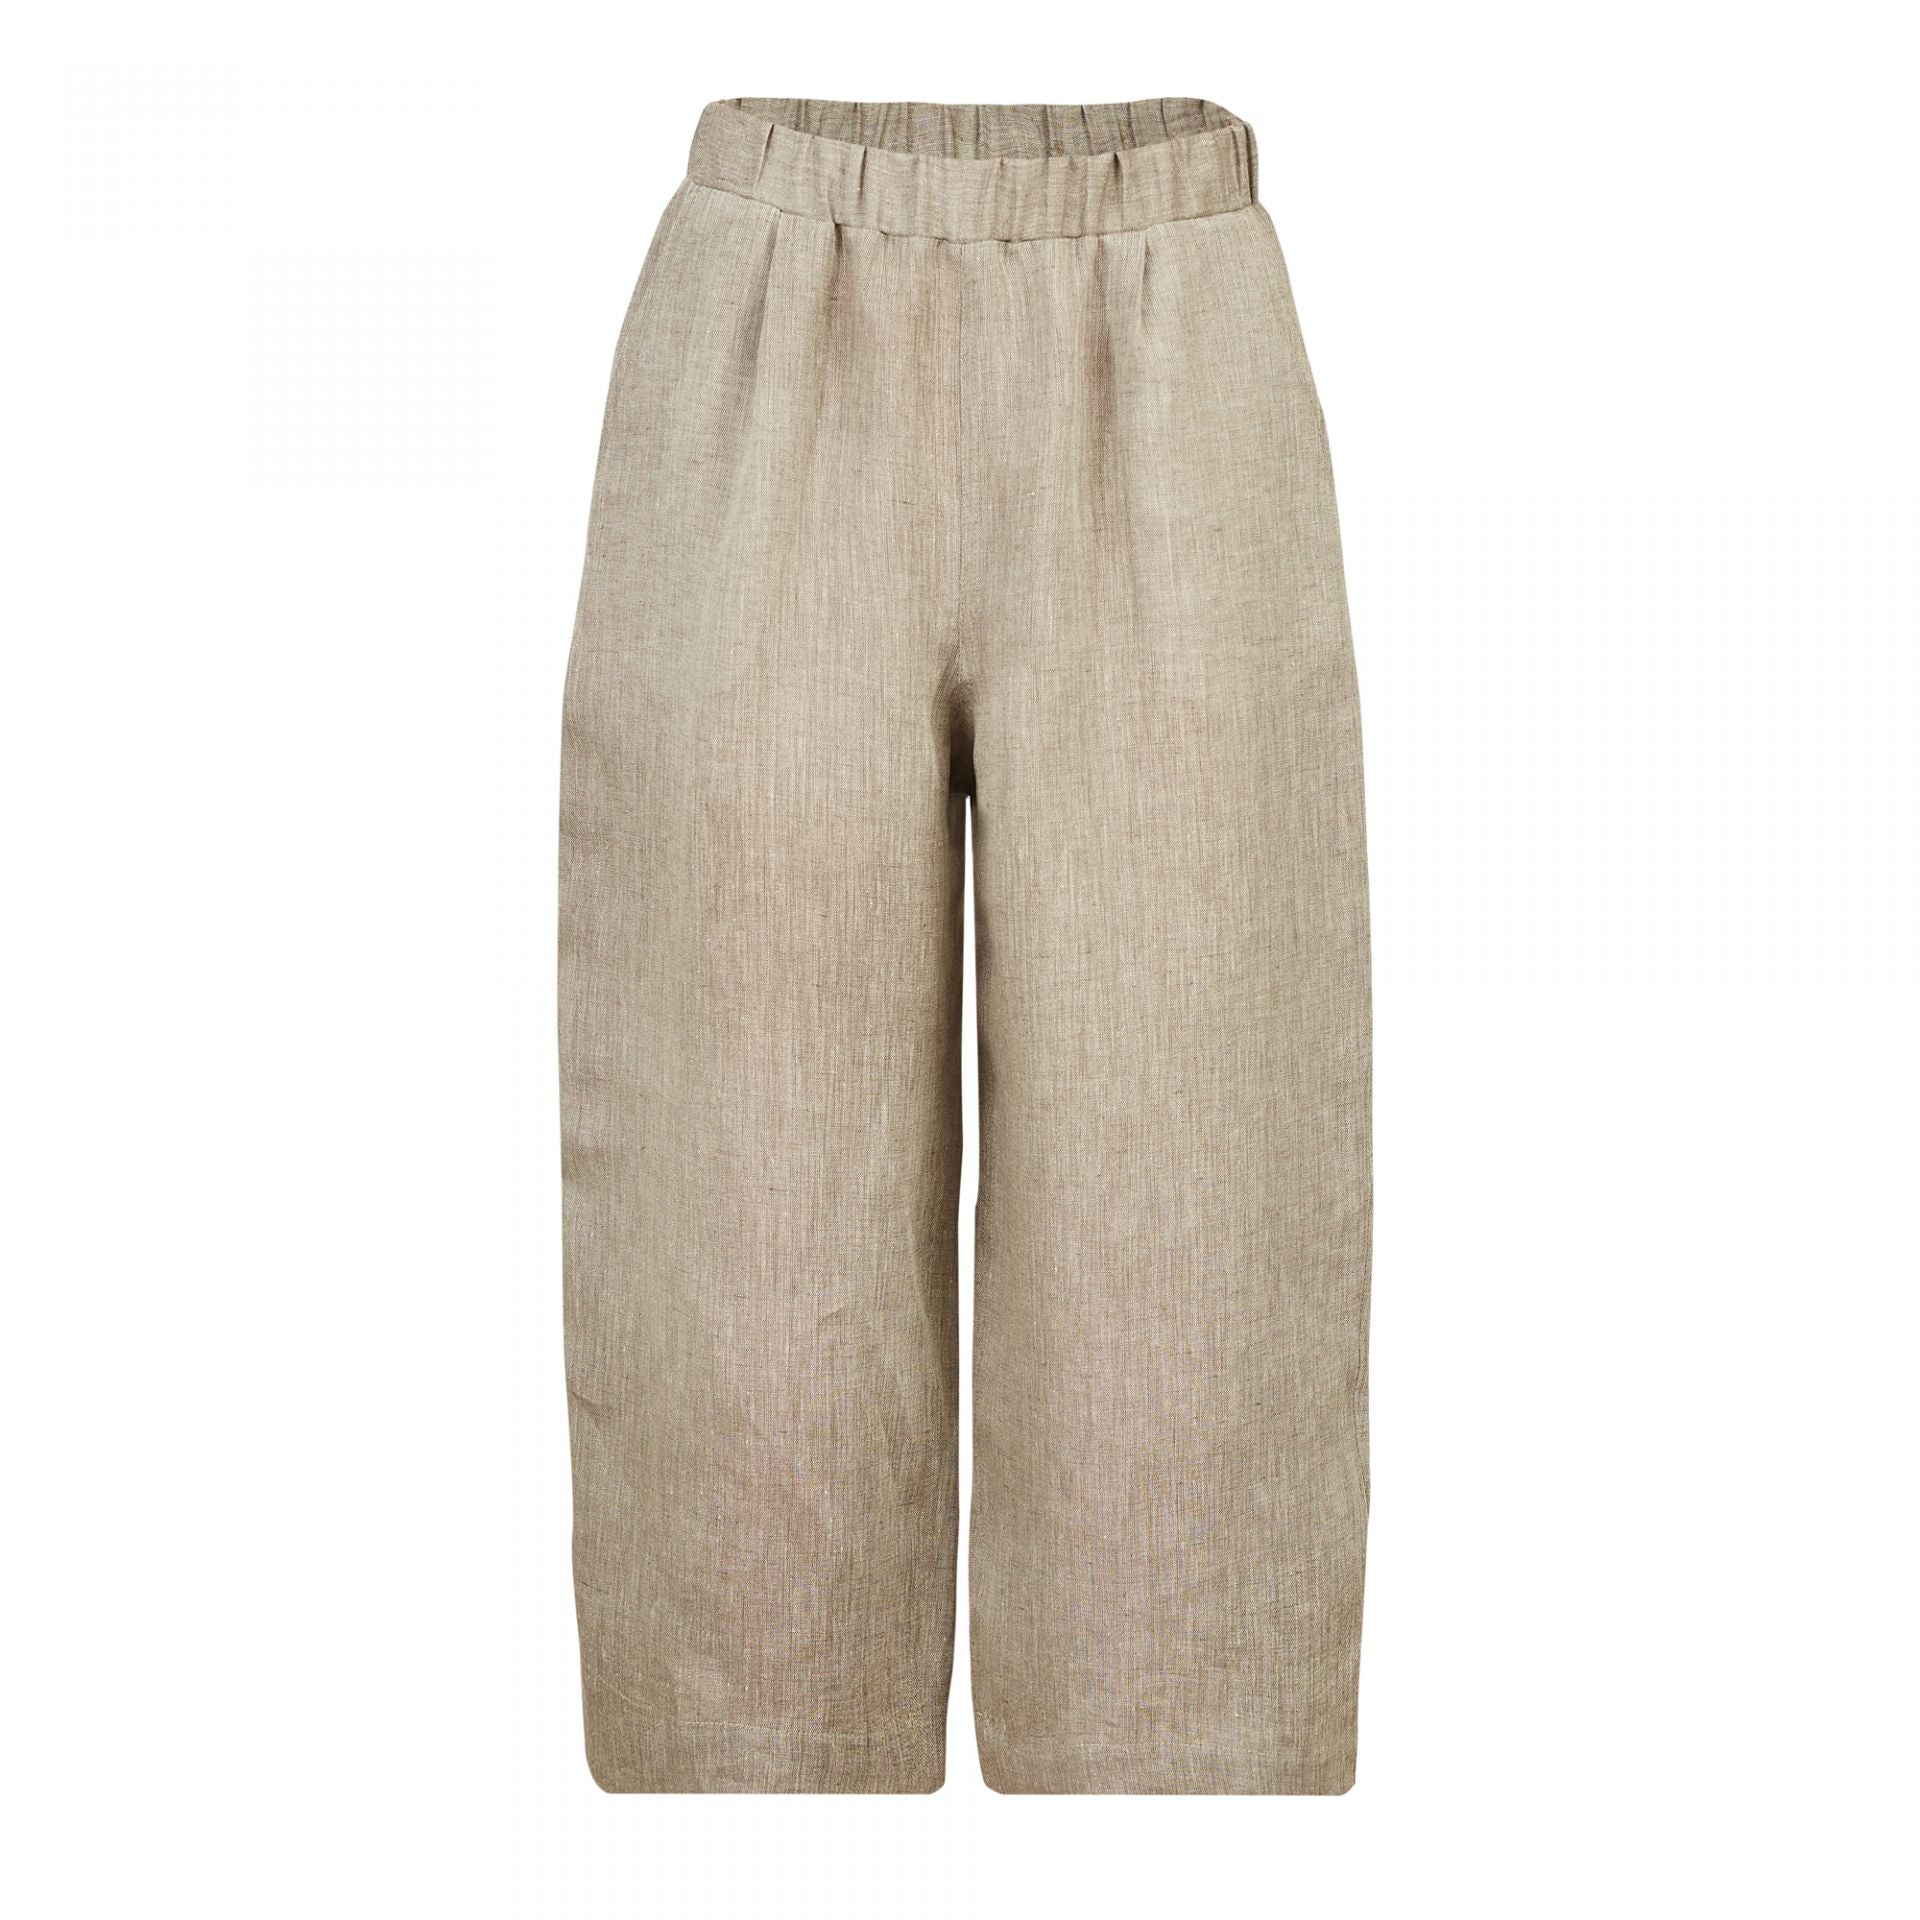 WIDE LEG ELASTIC BAND TROUSERS BEIGE